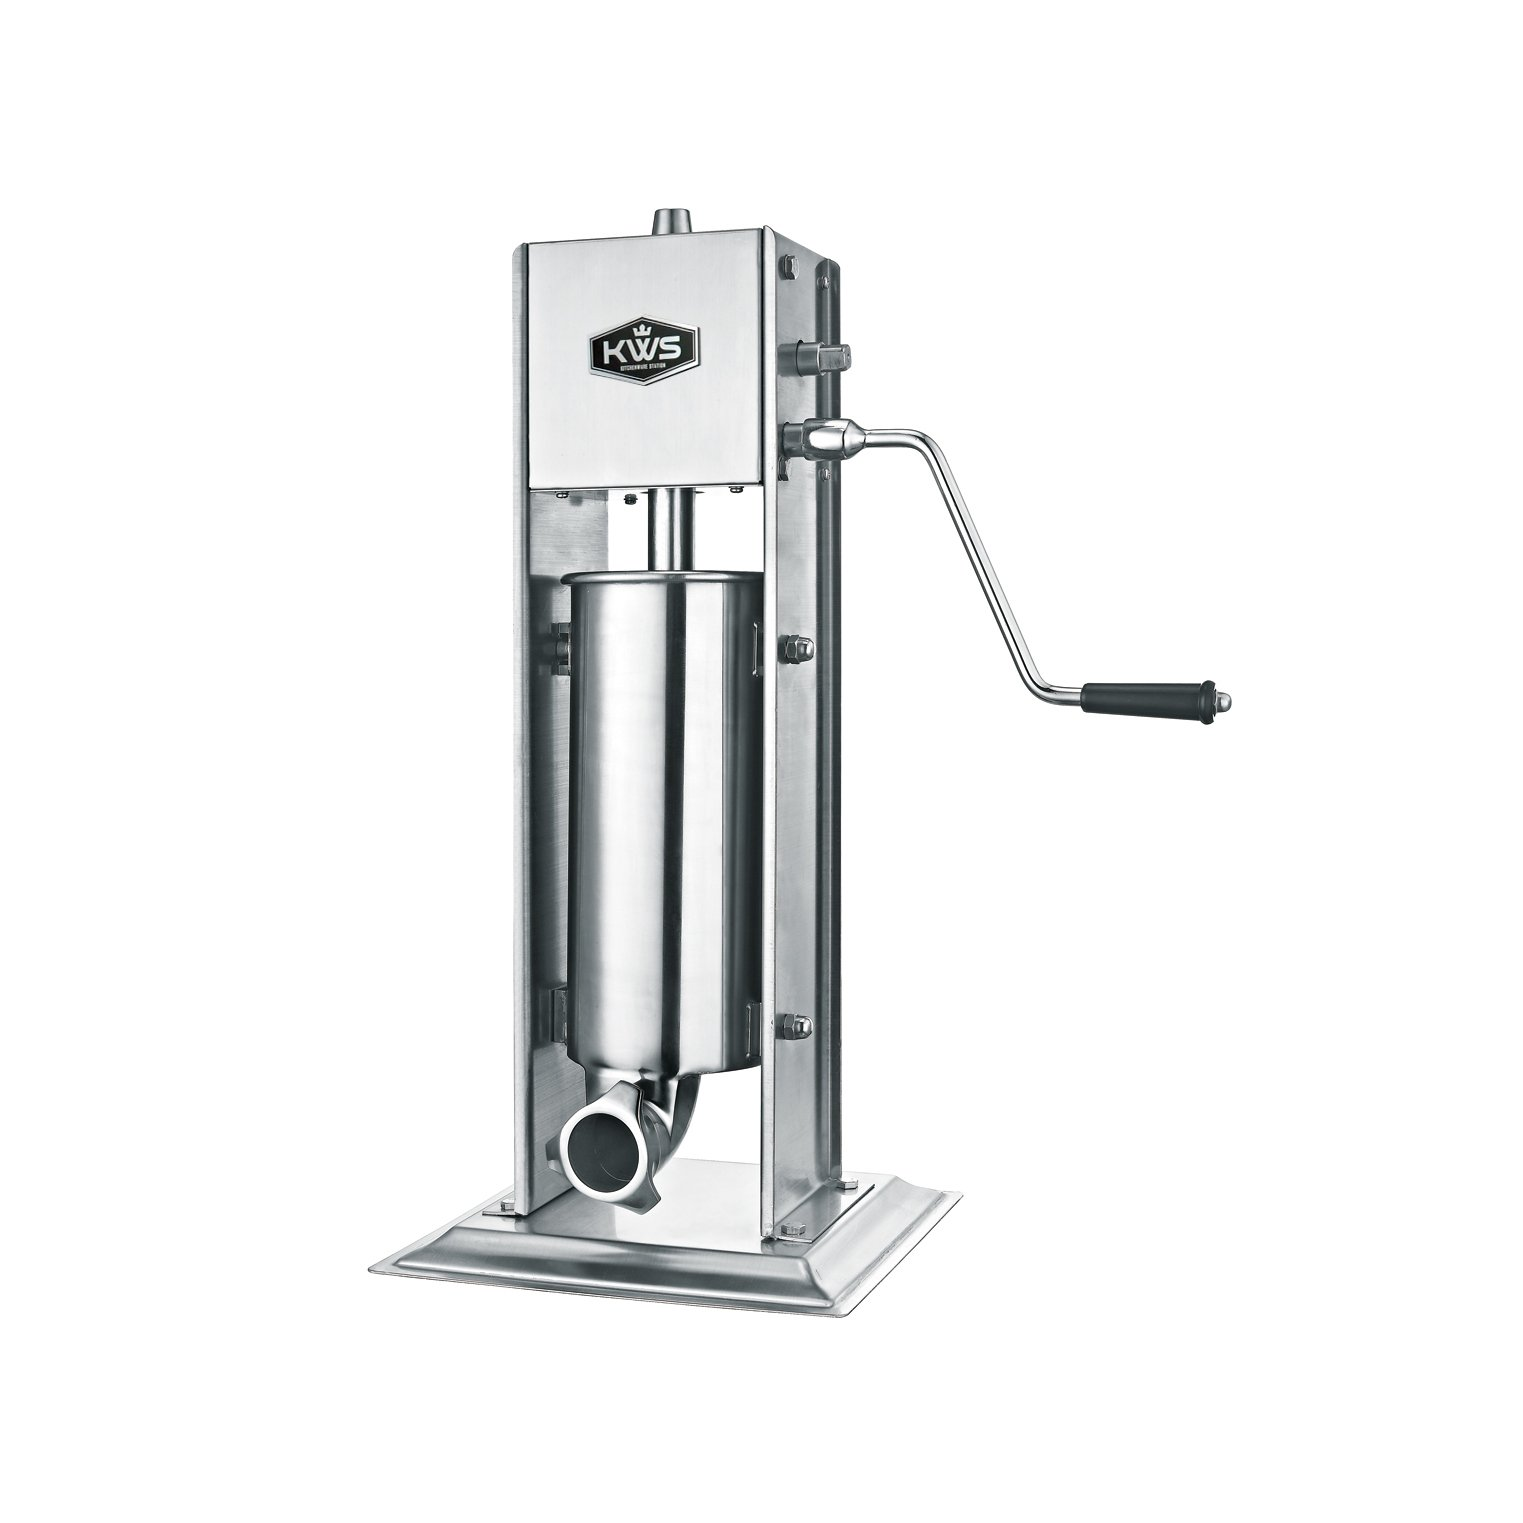 KWS Professional Commercial Sausage maker Sausage Stuffer ST-5L/11LB heavy duty gear system by KitchenWare Station